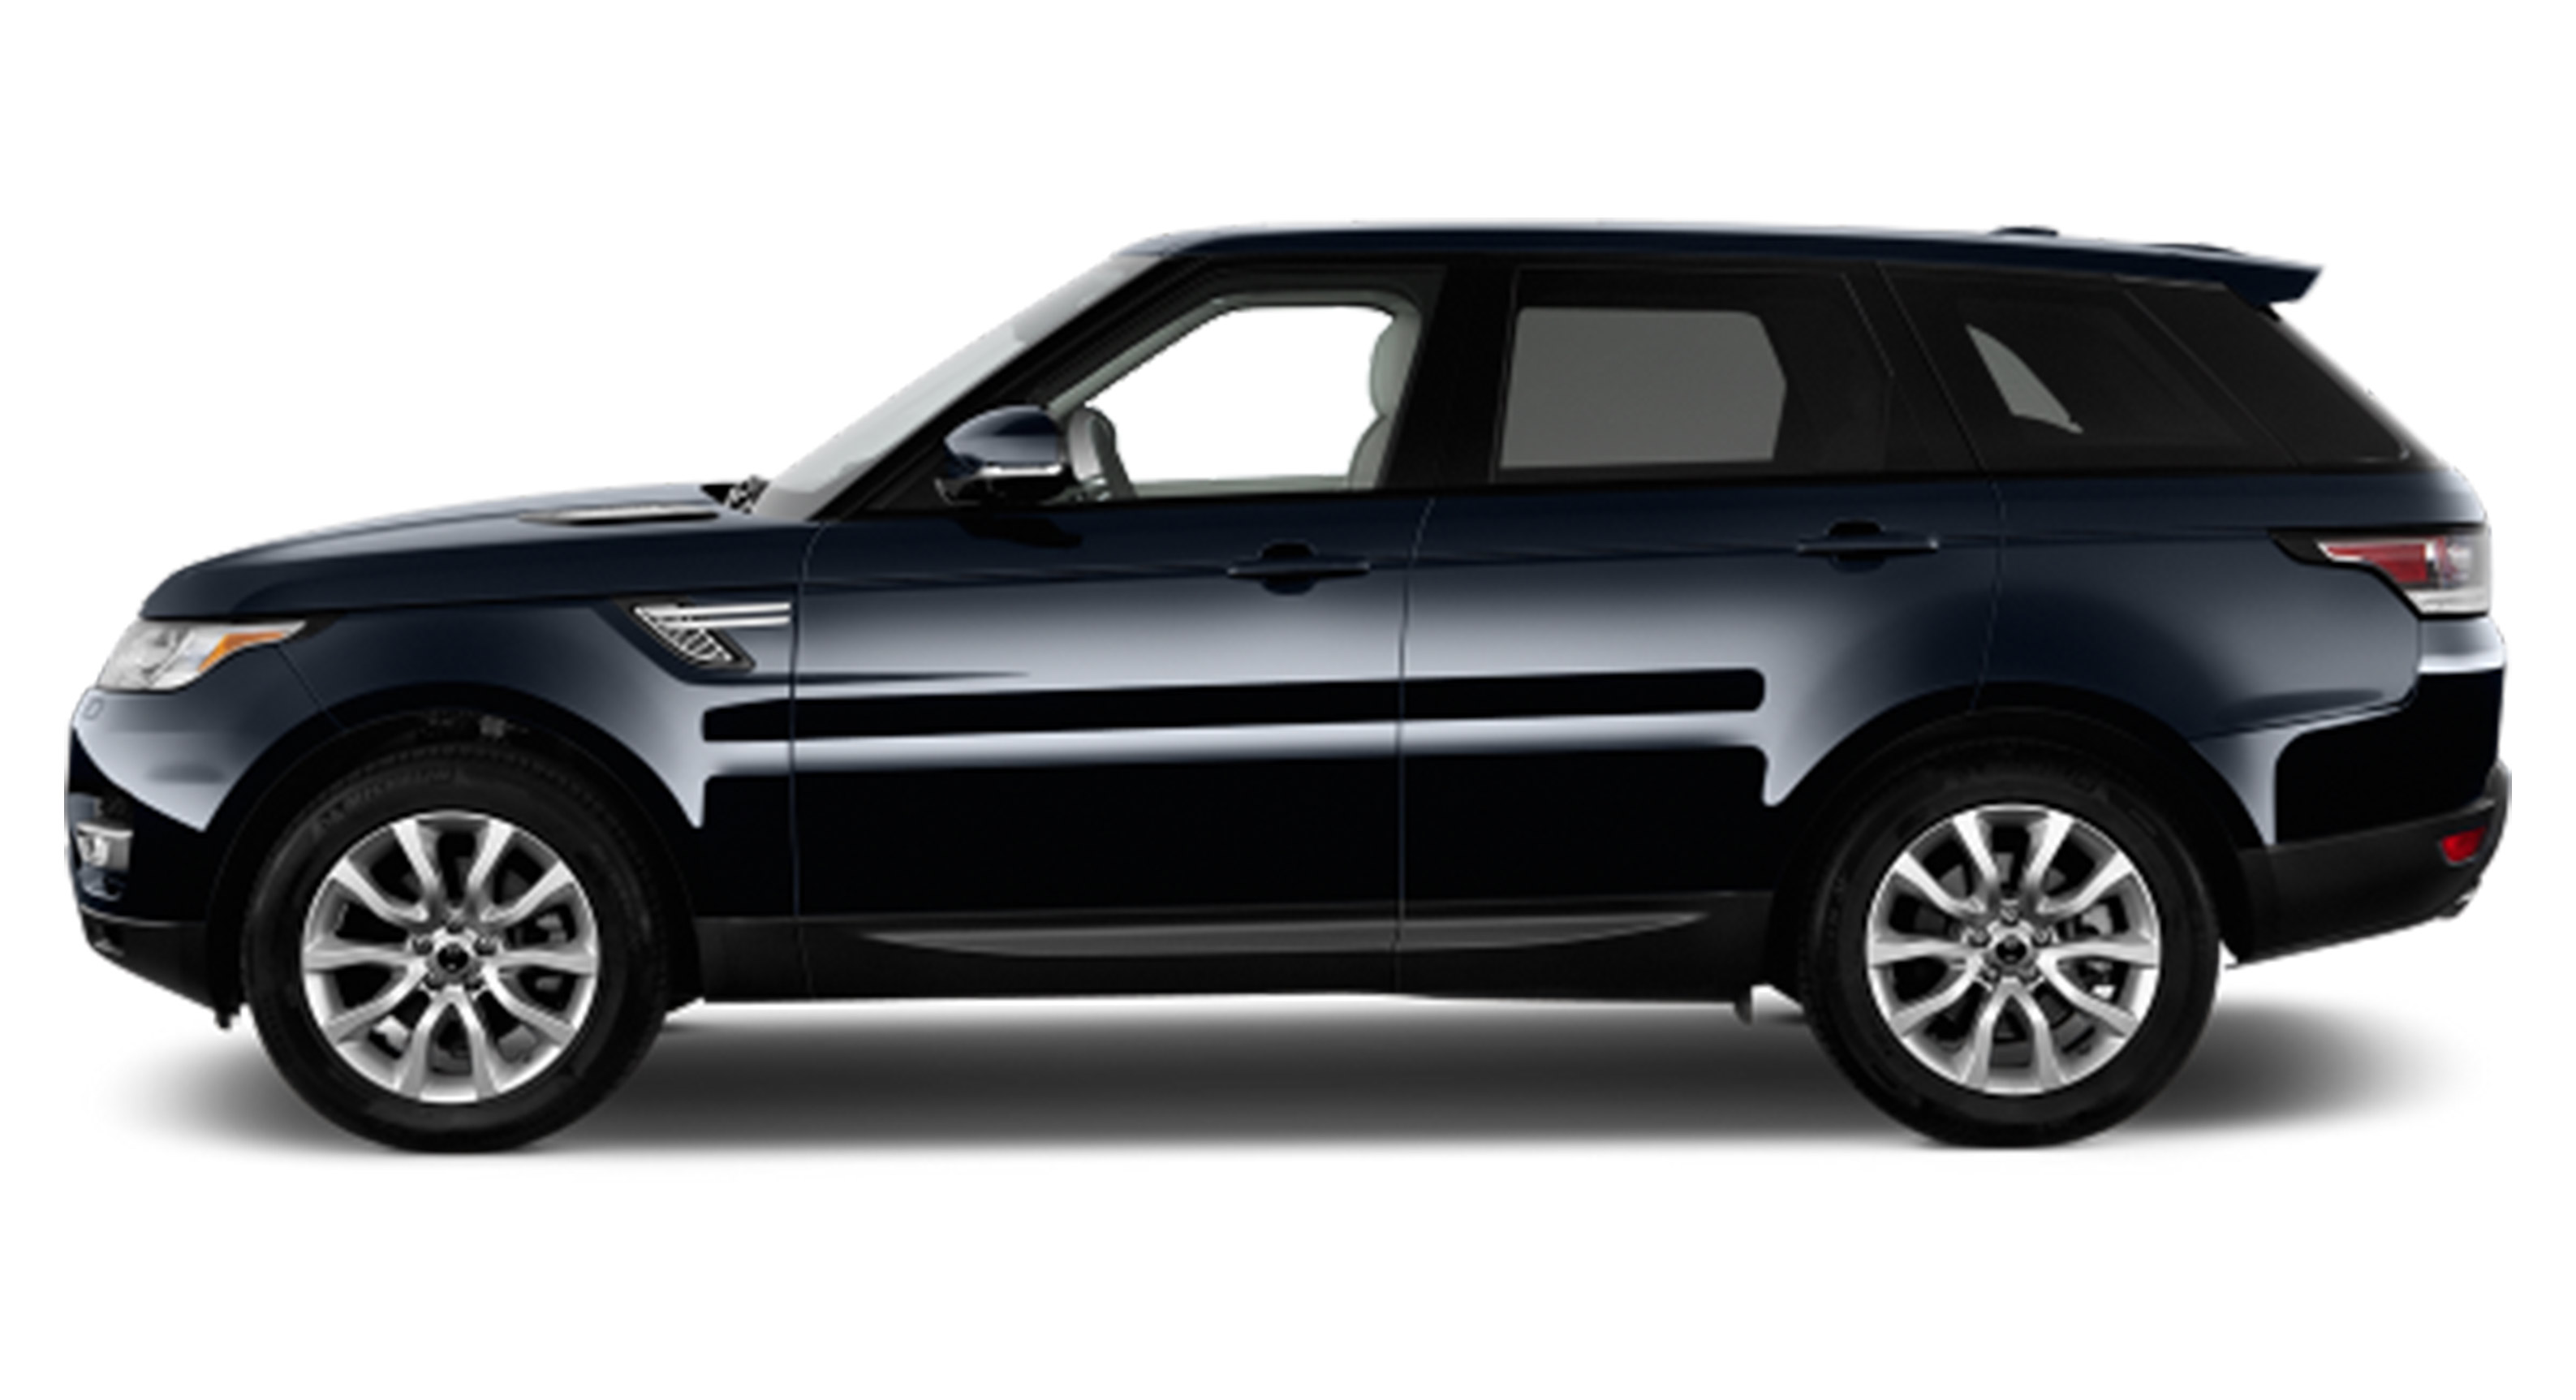 /vehicles/showrooms/models/land-rover-range-rover-sport